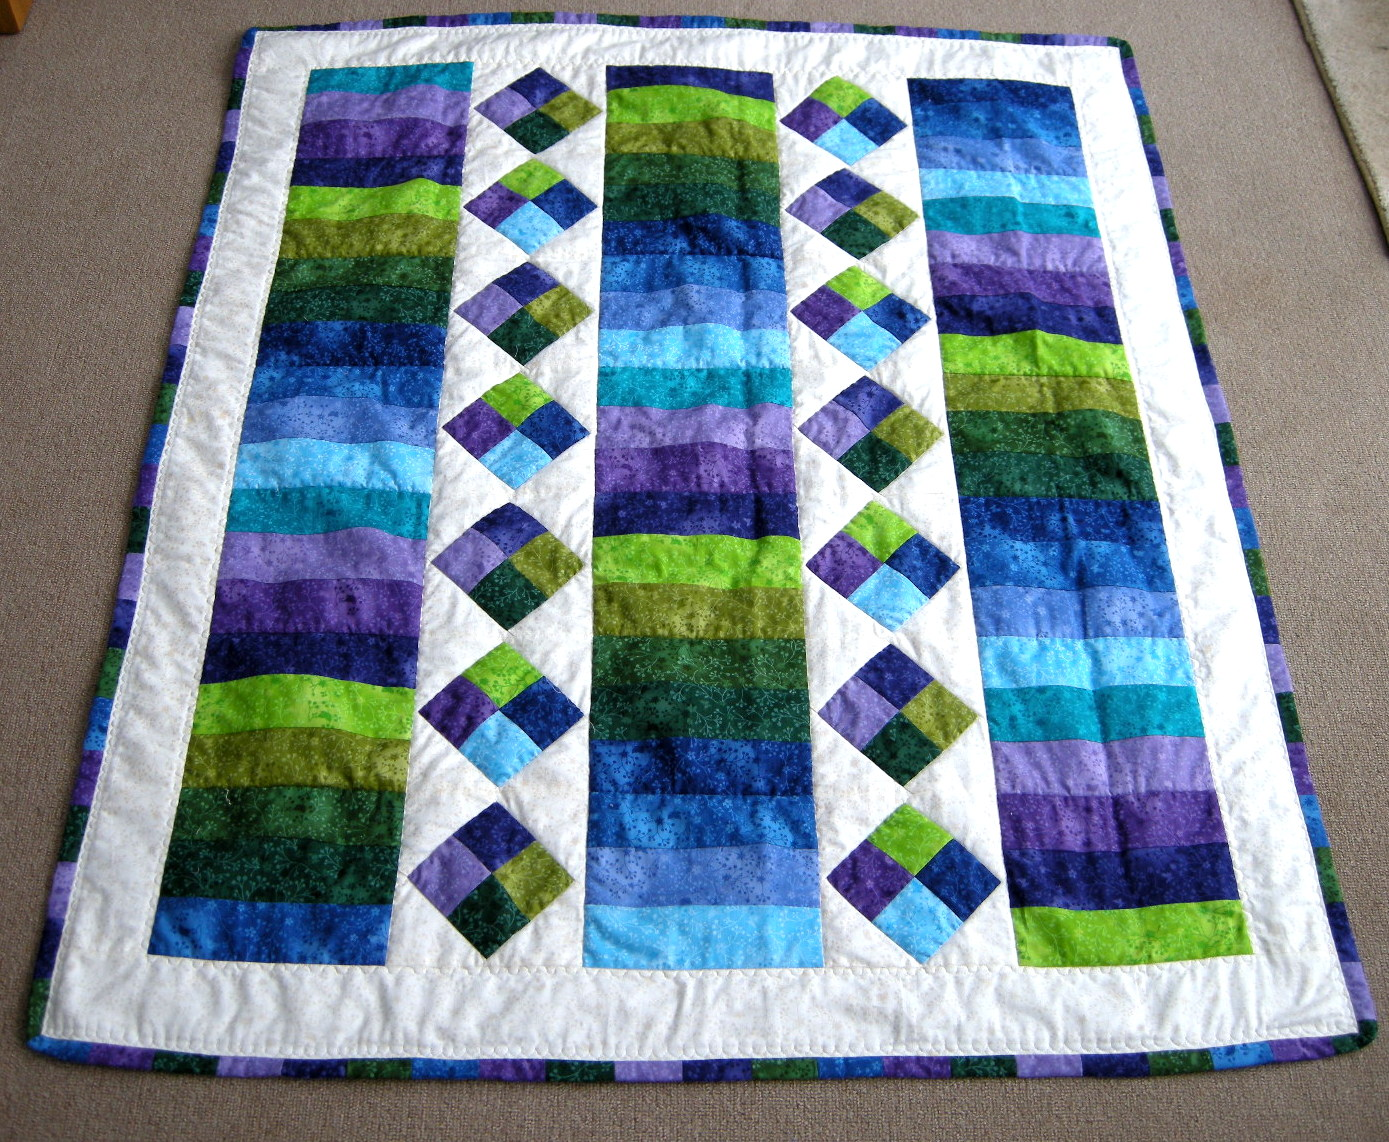 Katherine's Dabblings: Jelly Roll Quilt : jelly roll quilt books - Adamdwight.com